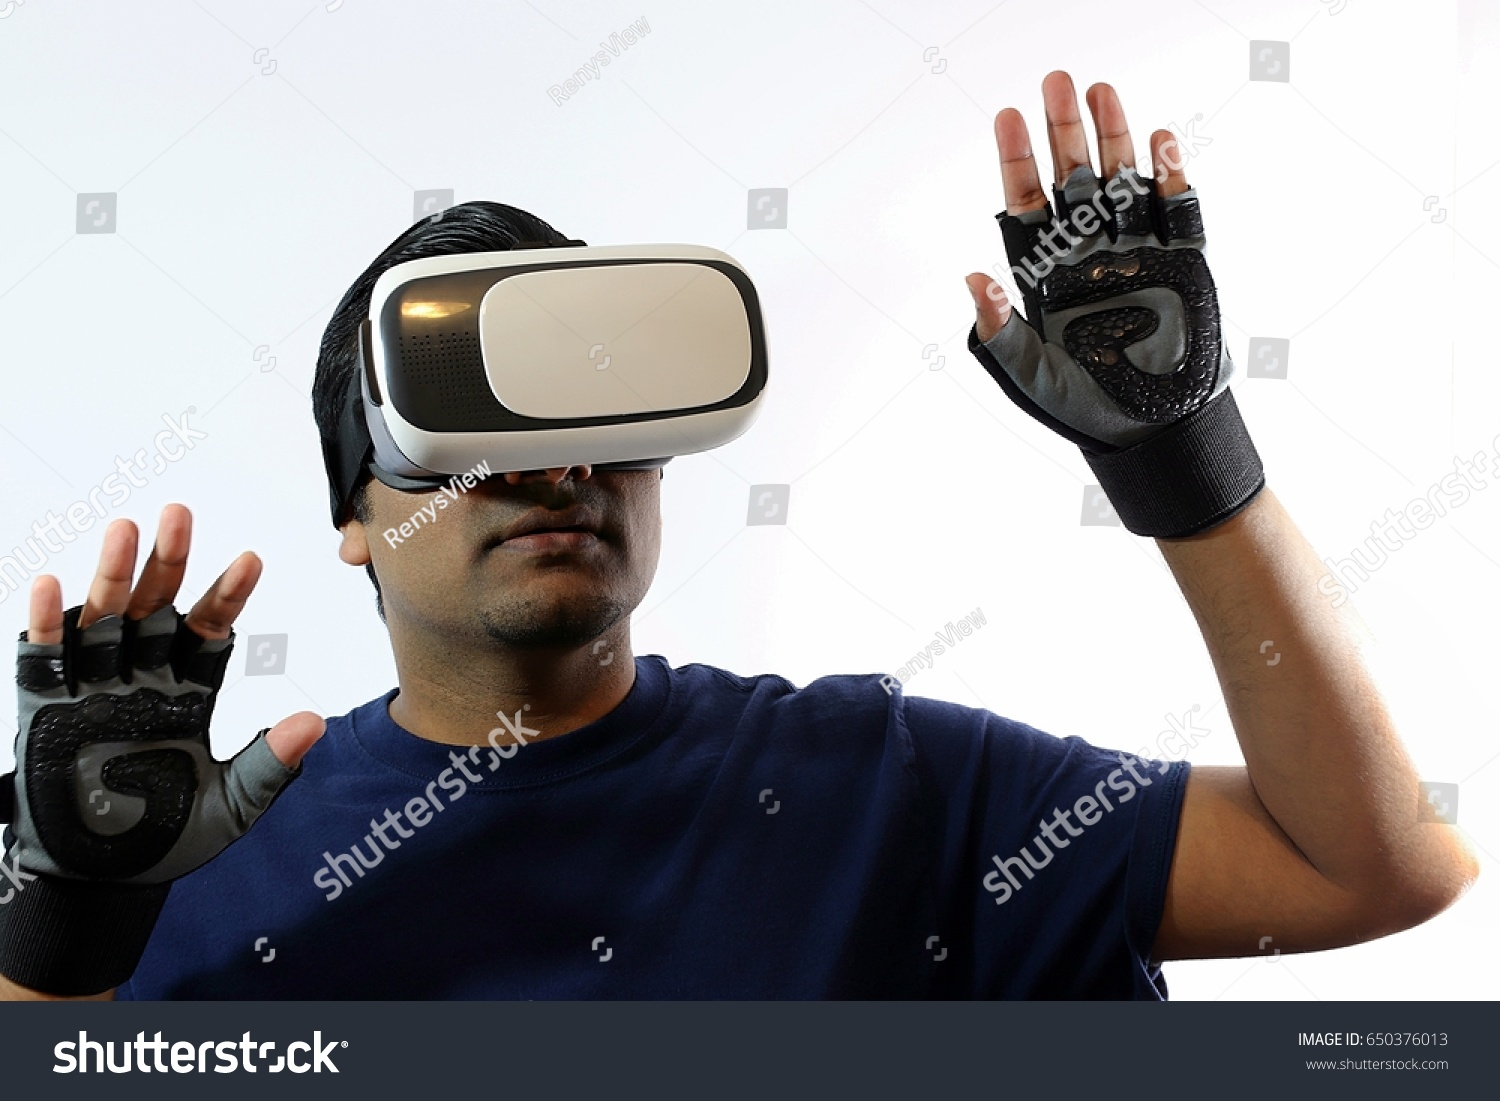 b03f164084d6 Young handsome man wearing virtual reality goggles with both arms up  wearing controller gloves